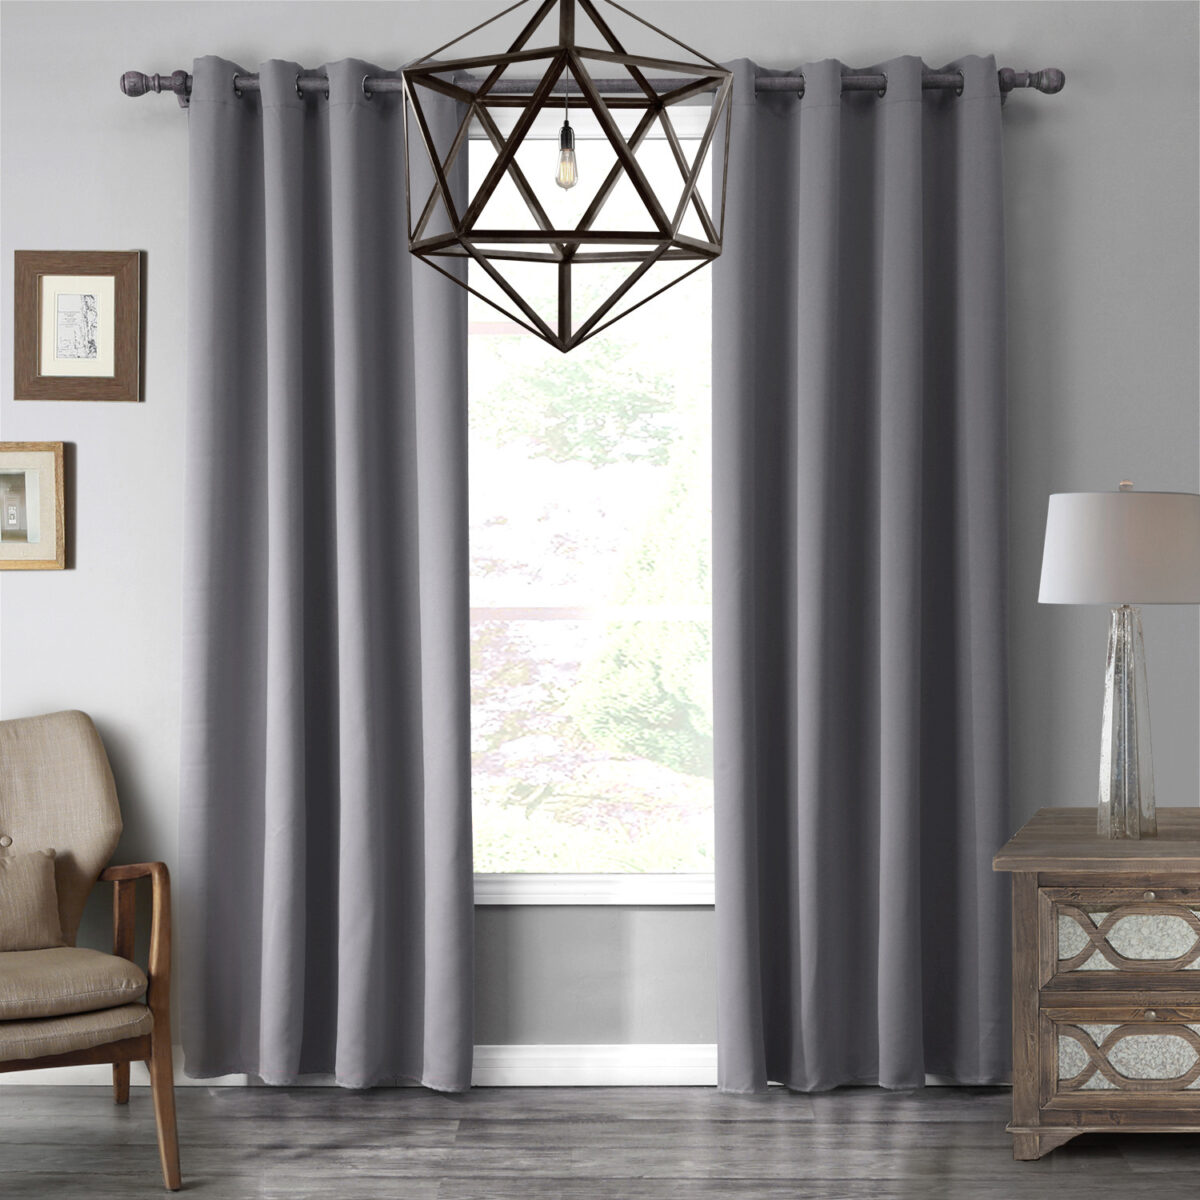 colors-curtains-trends-2021-gray